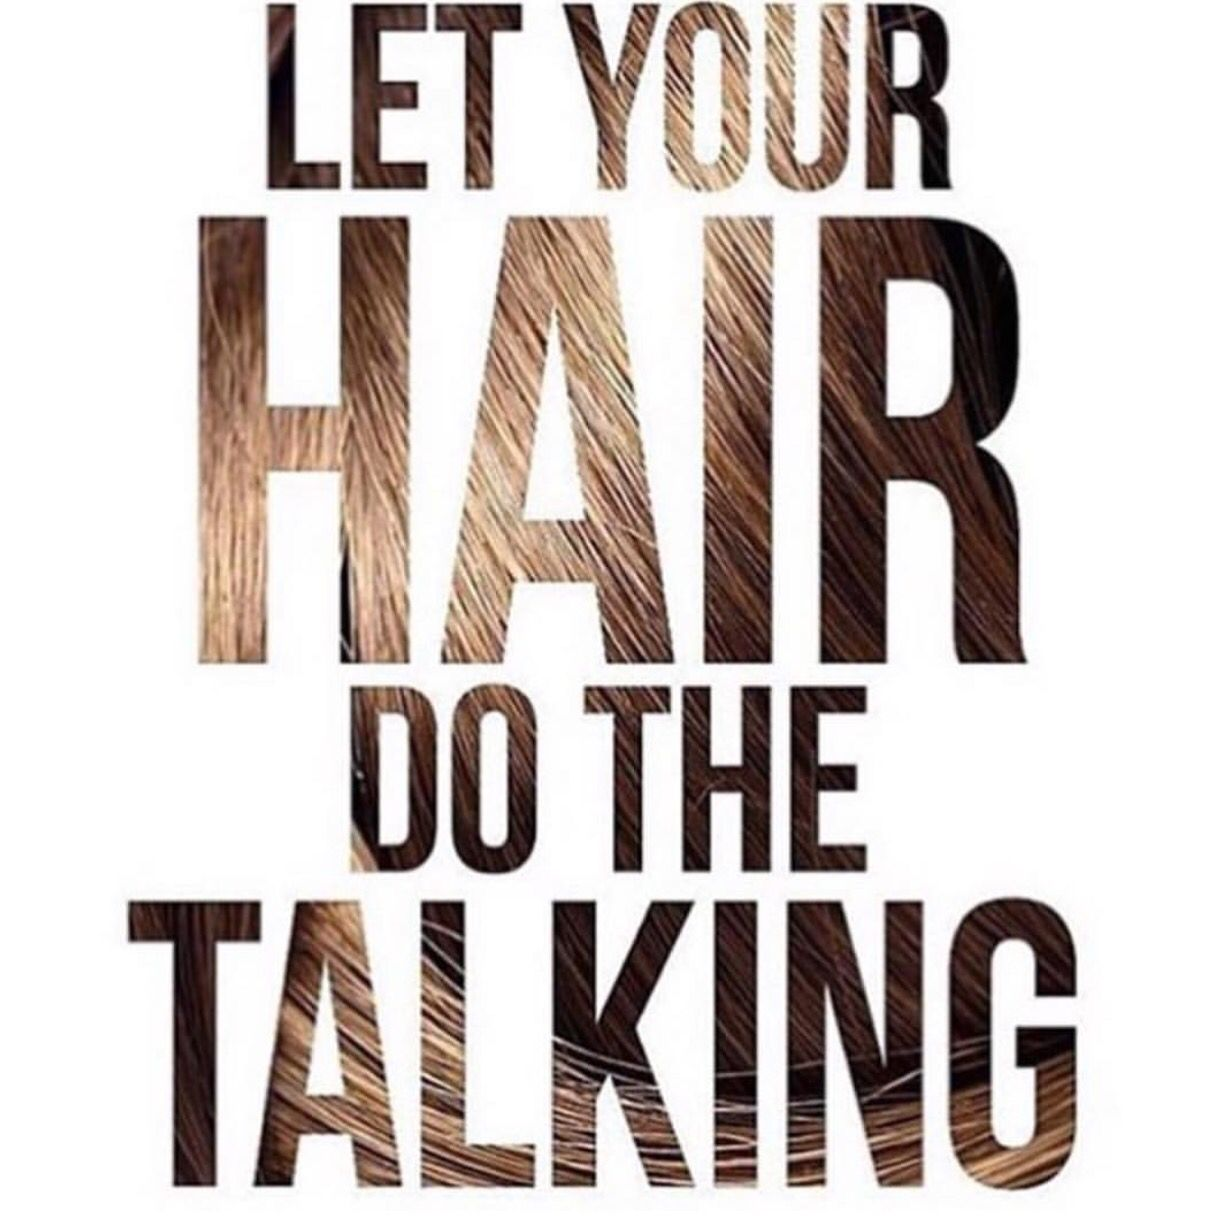 Salon quotes quotes pinterest salon quotes salons for Salon quotes and sayings